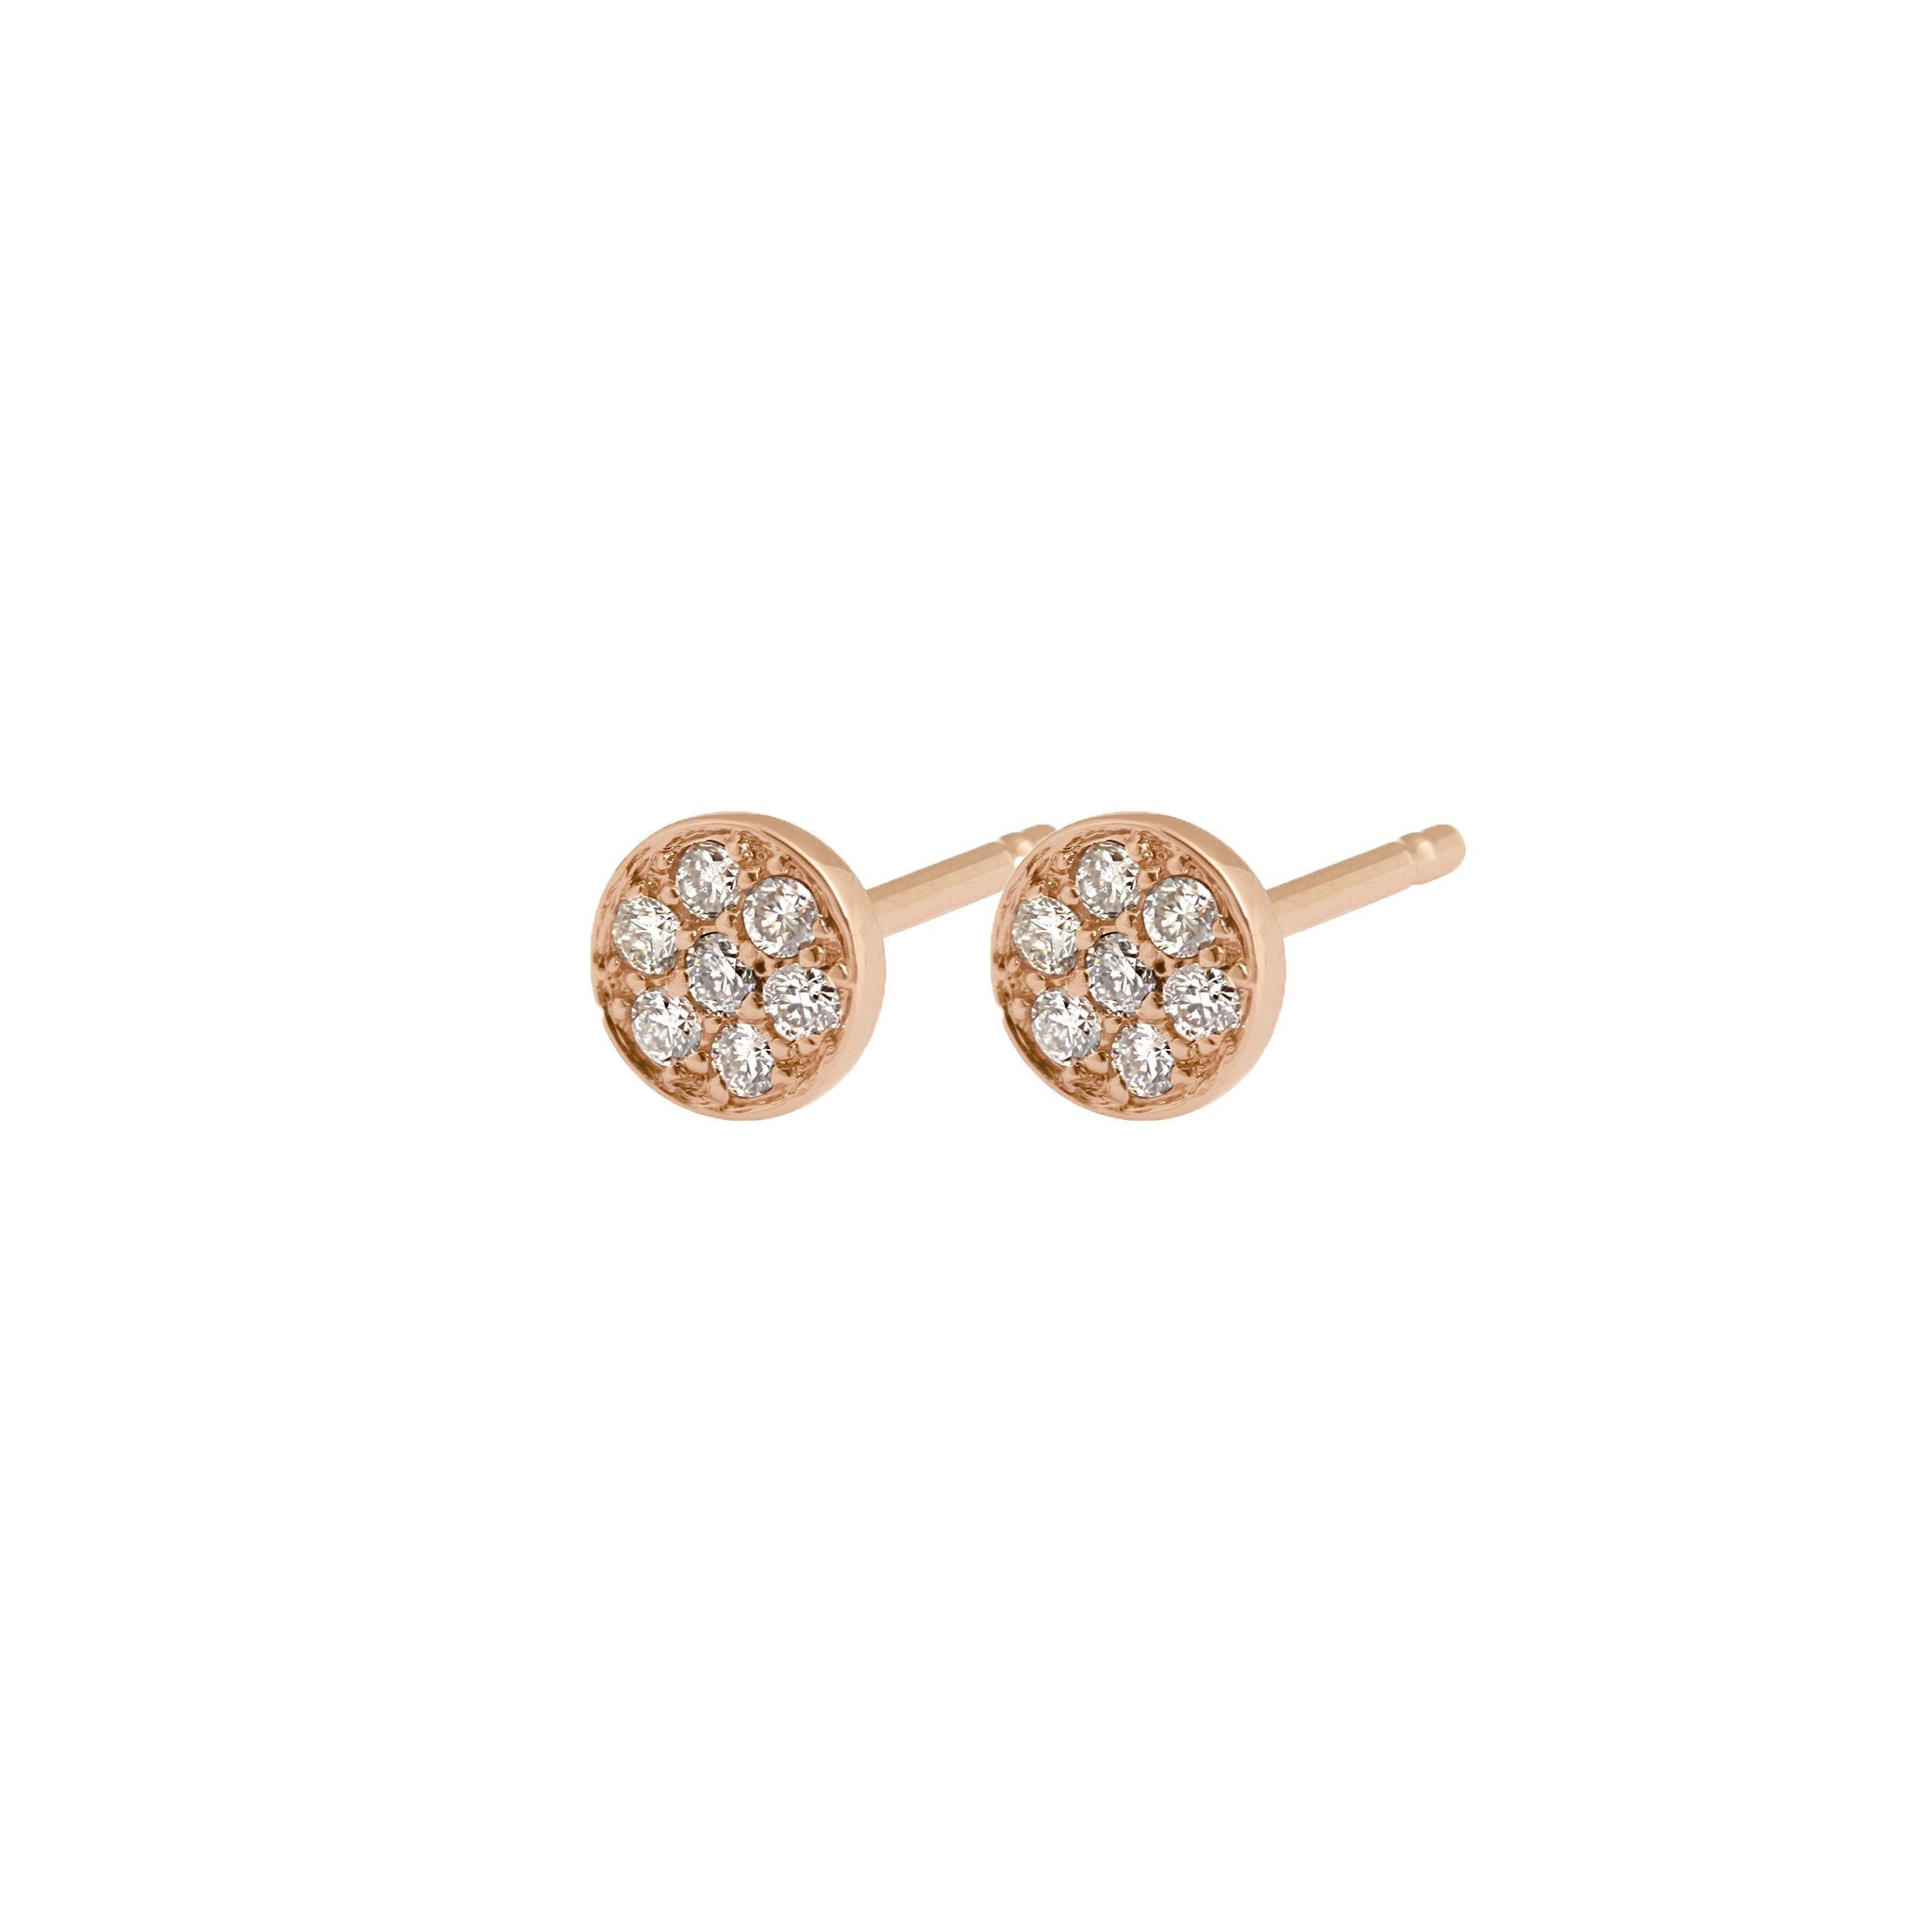 Gigi Clozeau - Puce diamonds earrings, Rose Gold